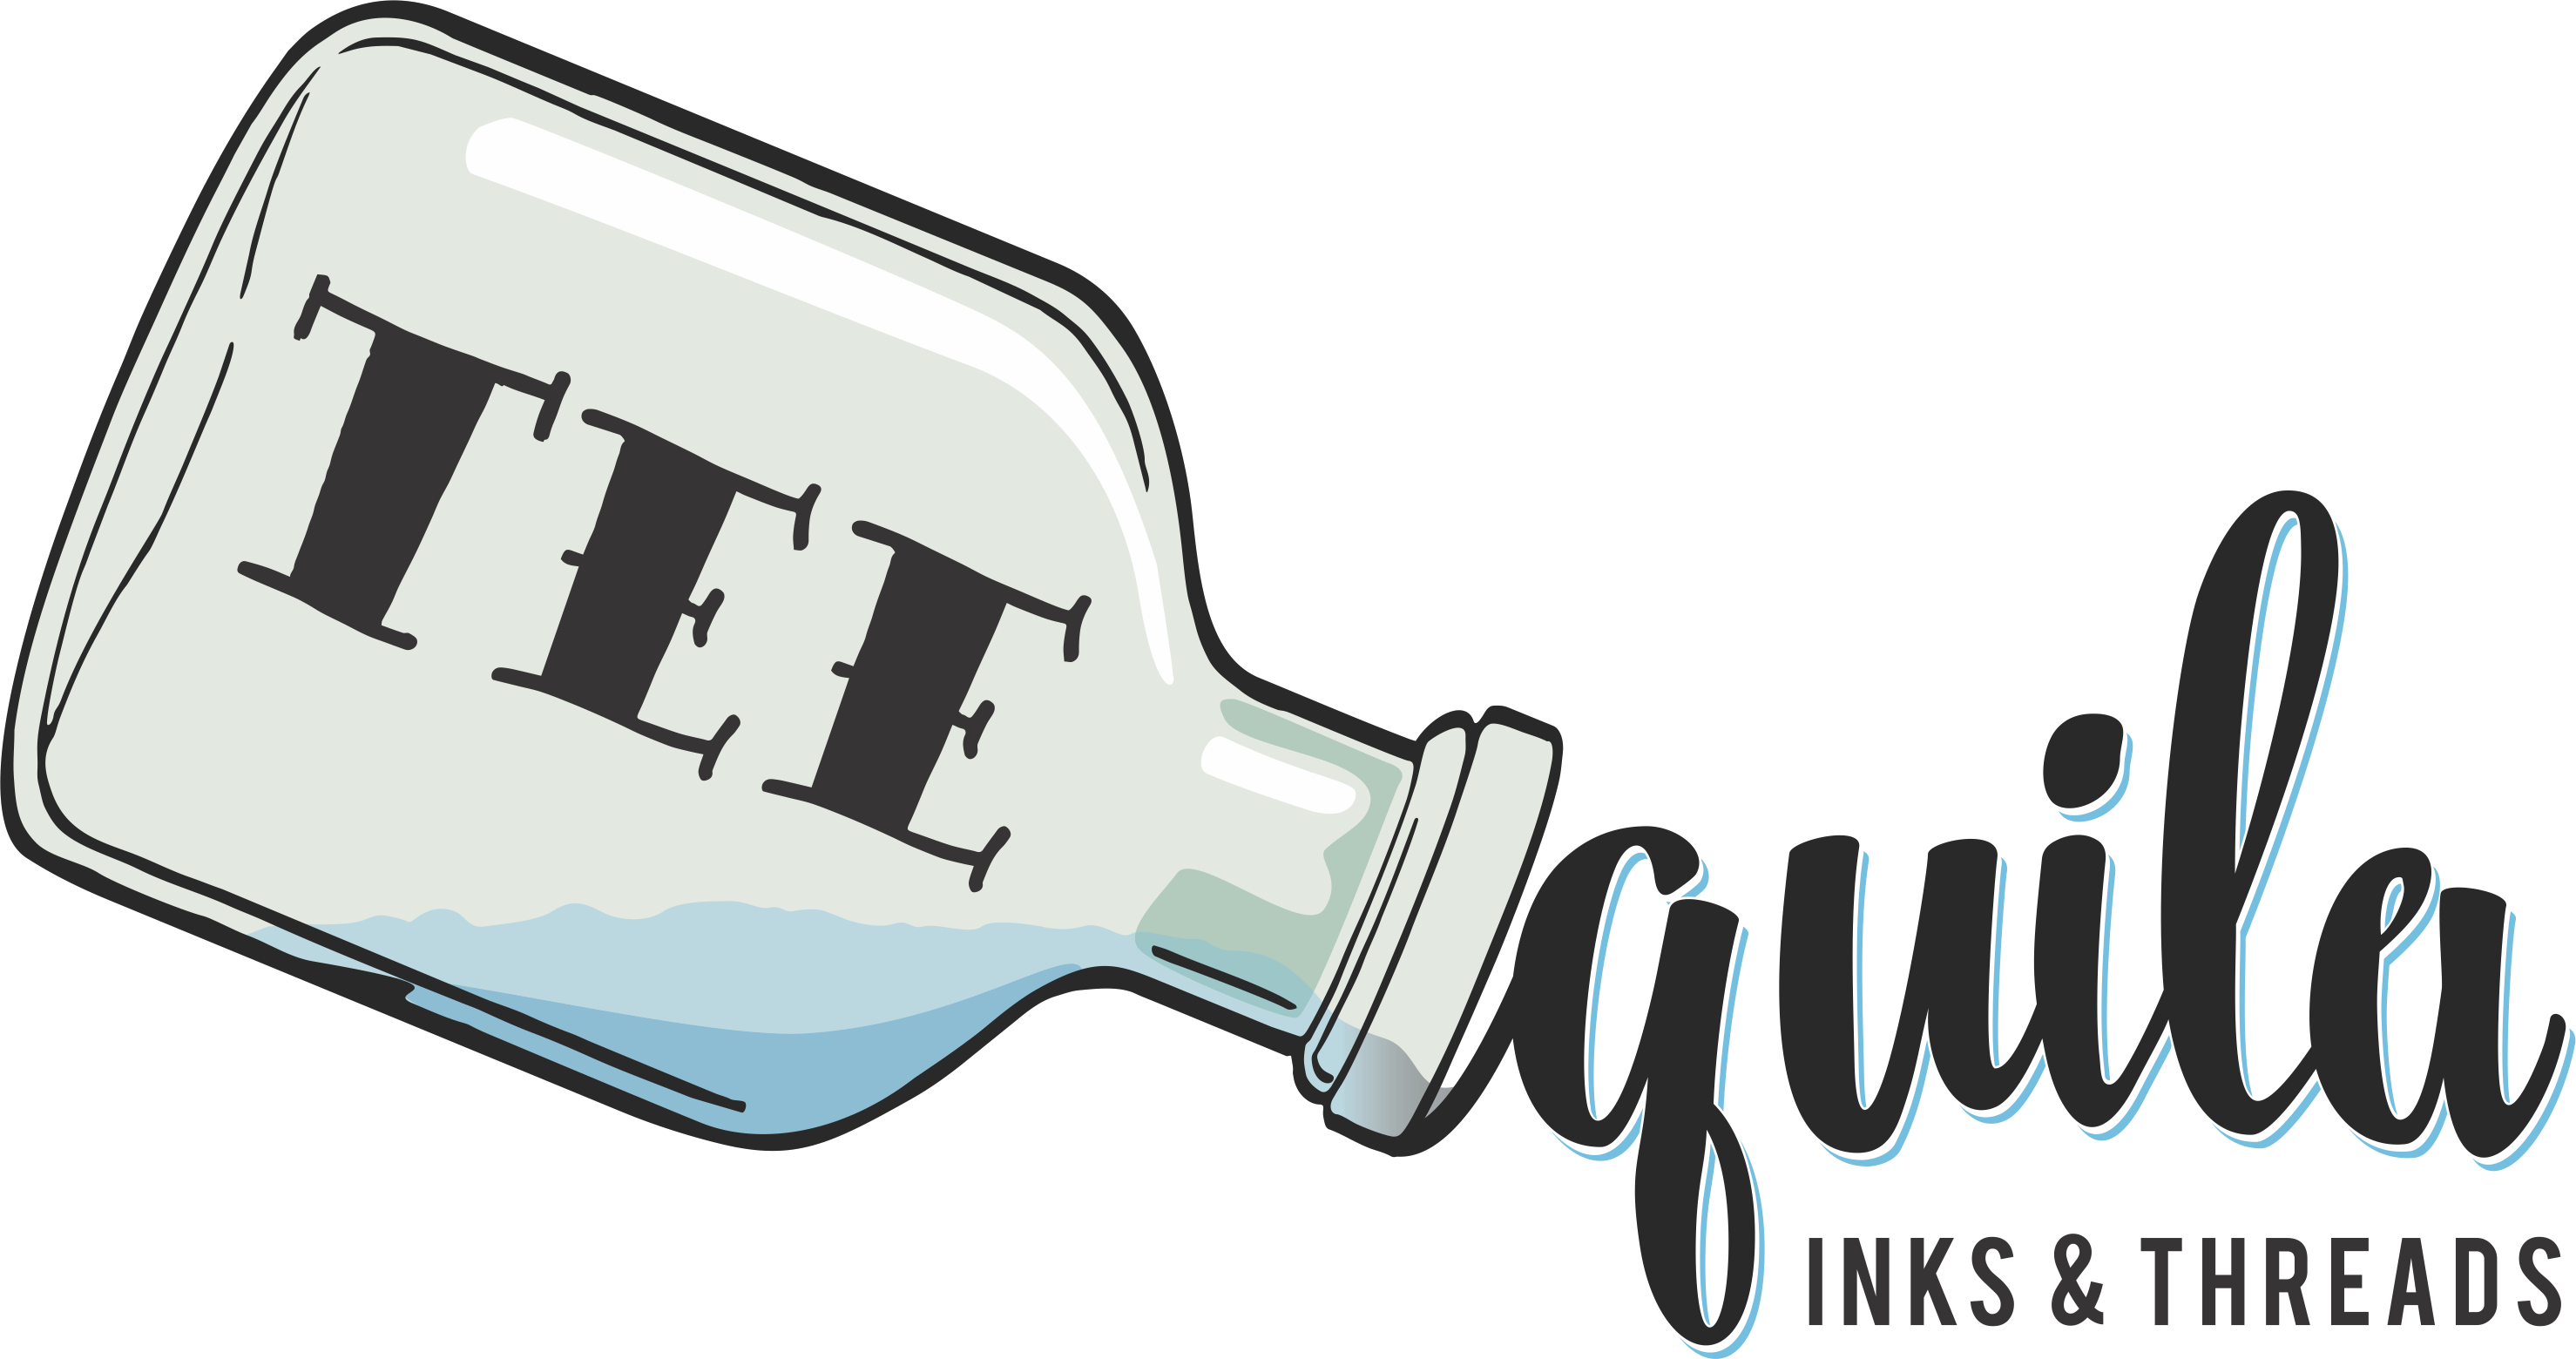 TEE-quila Inks & Threads